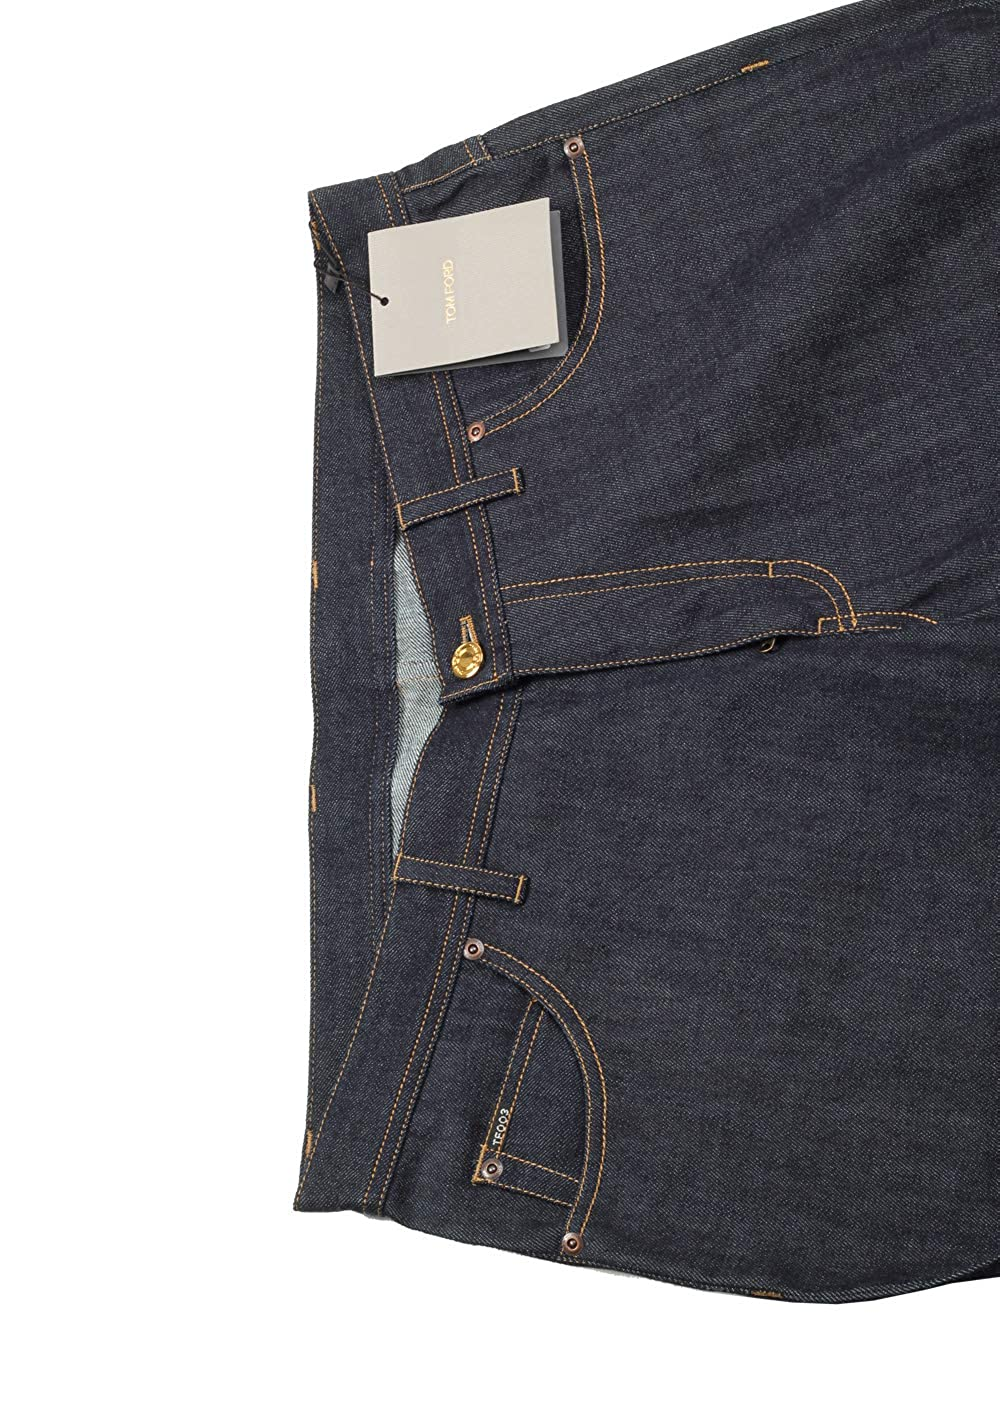 Amazon.com: CL – Tom Ford azul recto pantalones vaqueros ...